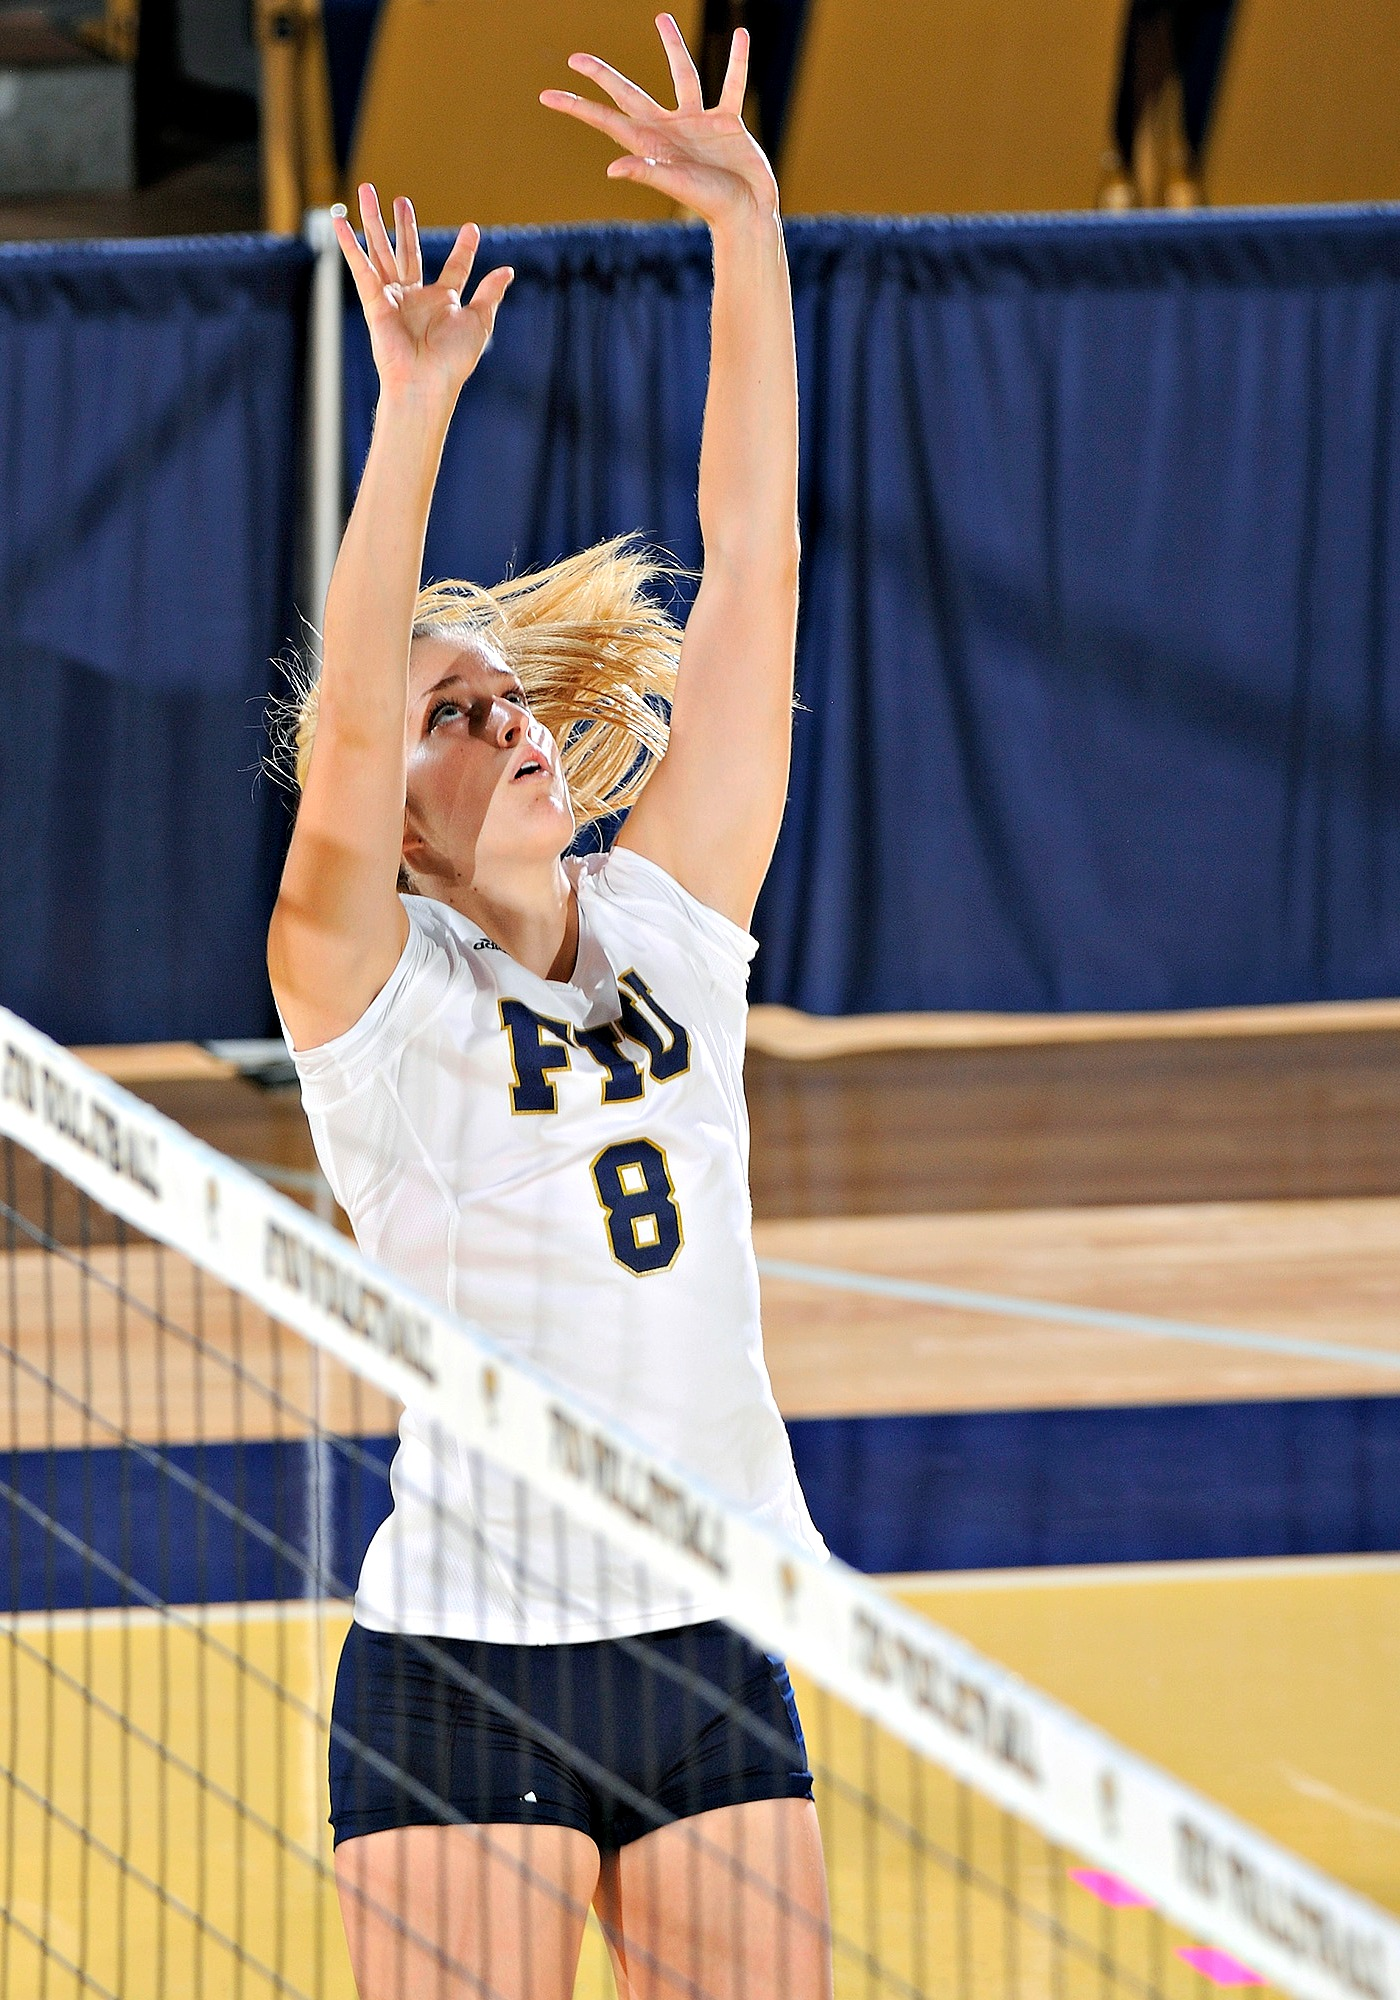 Anabela Sataric has made an immediate impact as a setter for FIU in her freshman season. (Photo courtesy of ???)